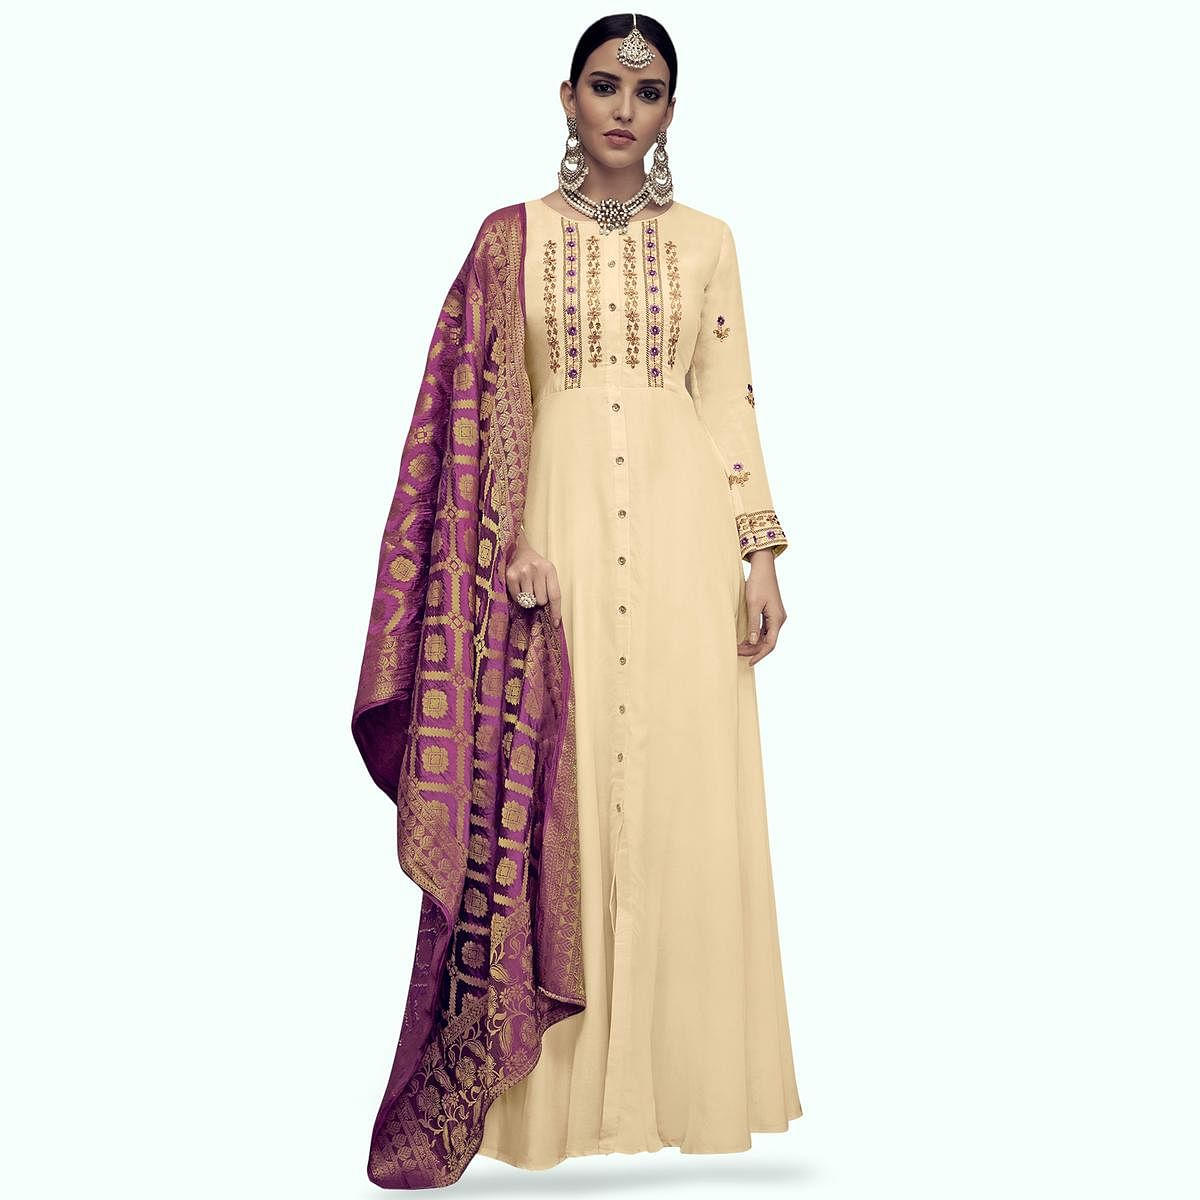 Marvellous Cream Colored Party Wear Embroidered Rayon Anarkali Suit